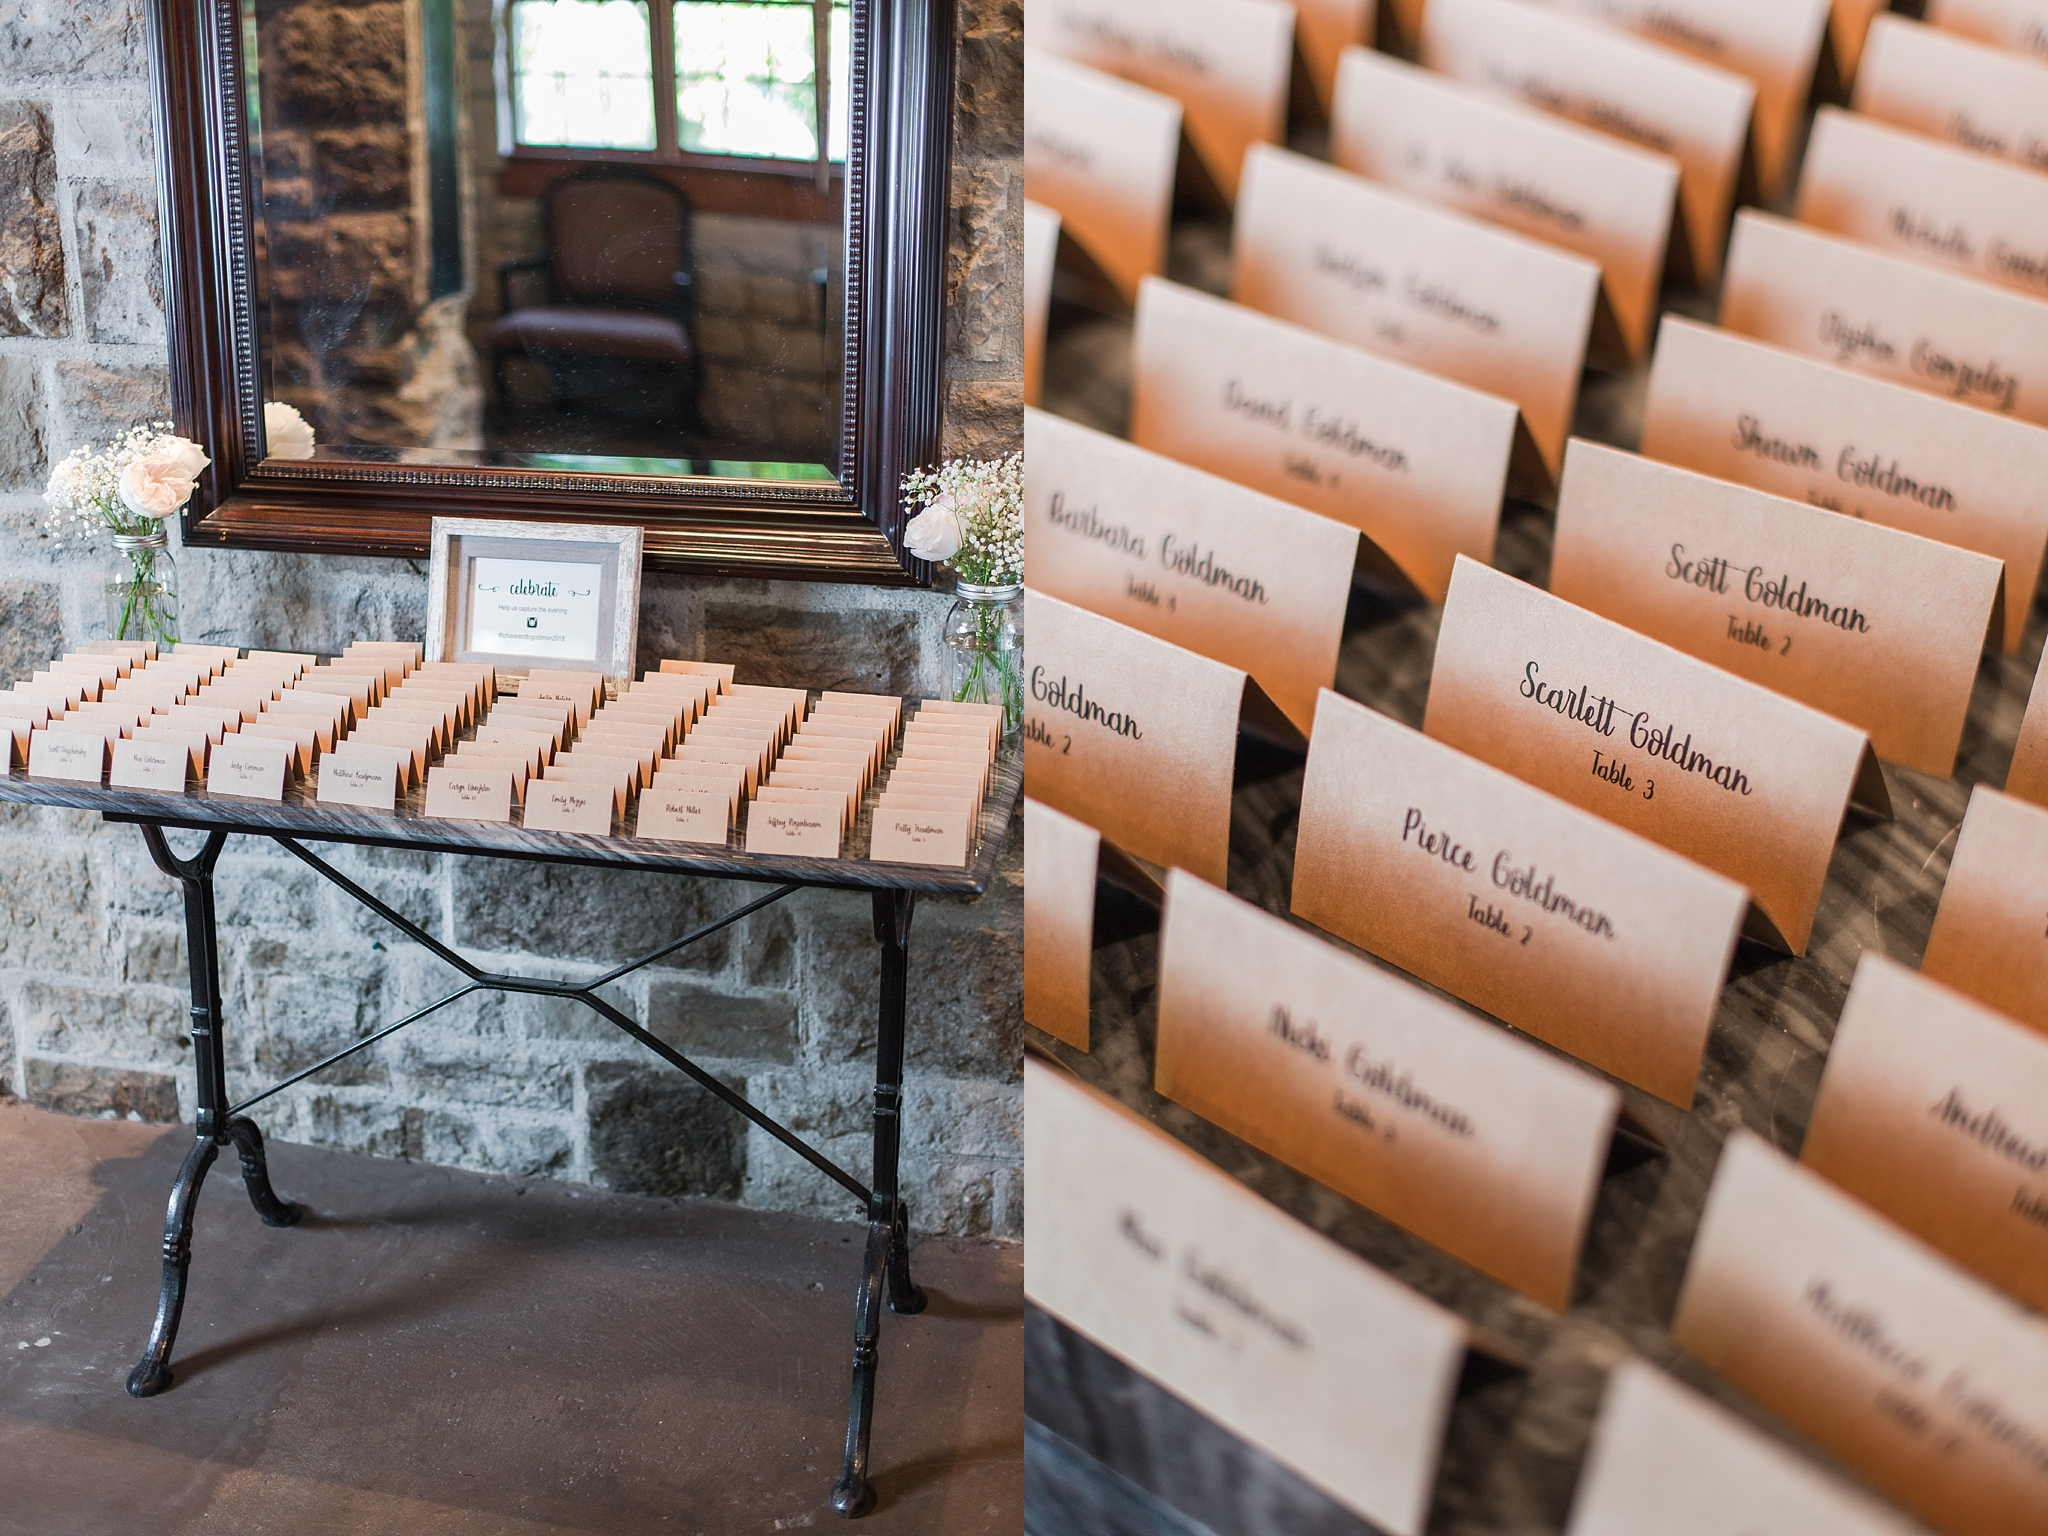 fun-candid-laid-back-wedding-photos-at-wellers-carriage-house-in-saline-michigan-and-at-the-eagle-crest-golf-resort-by-courtney-carolyn-photography_0084.jpg